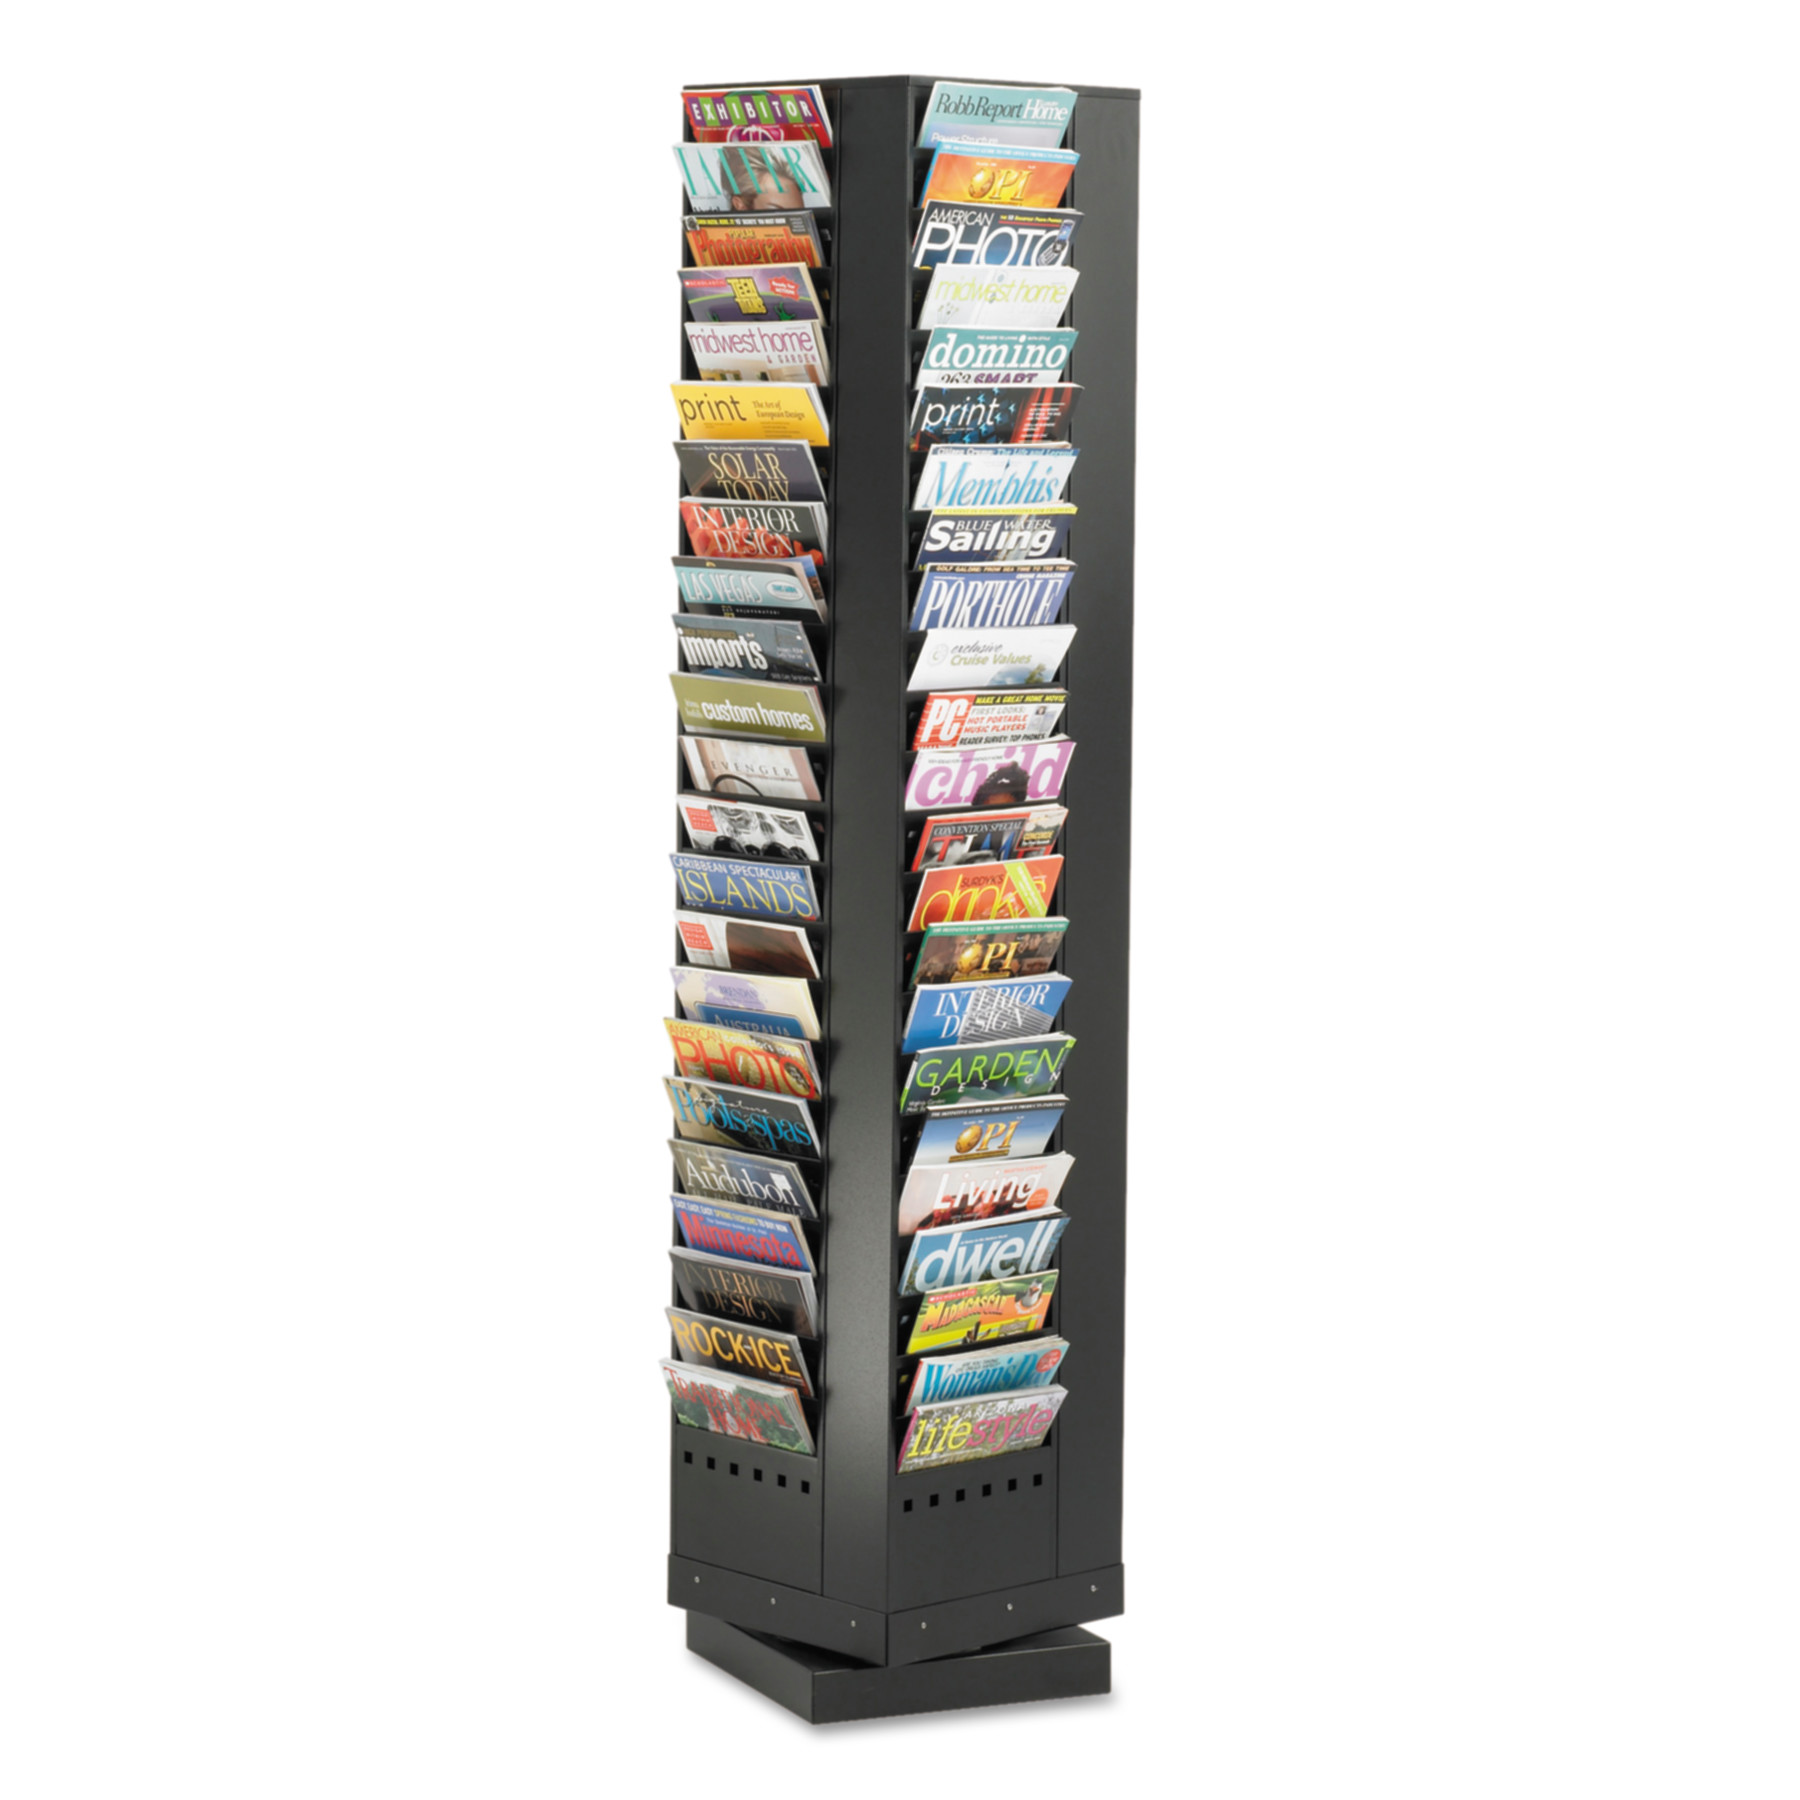 Safco Steel Rotary Magazine Rack, 92 Compartments, 14w x 14d x 68h, Black by Safco Products